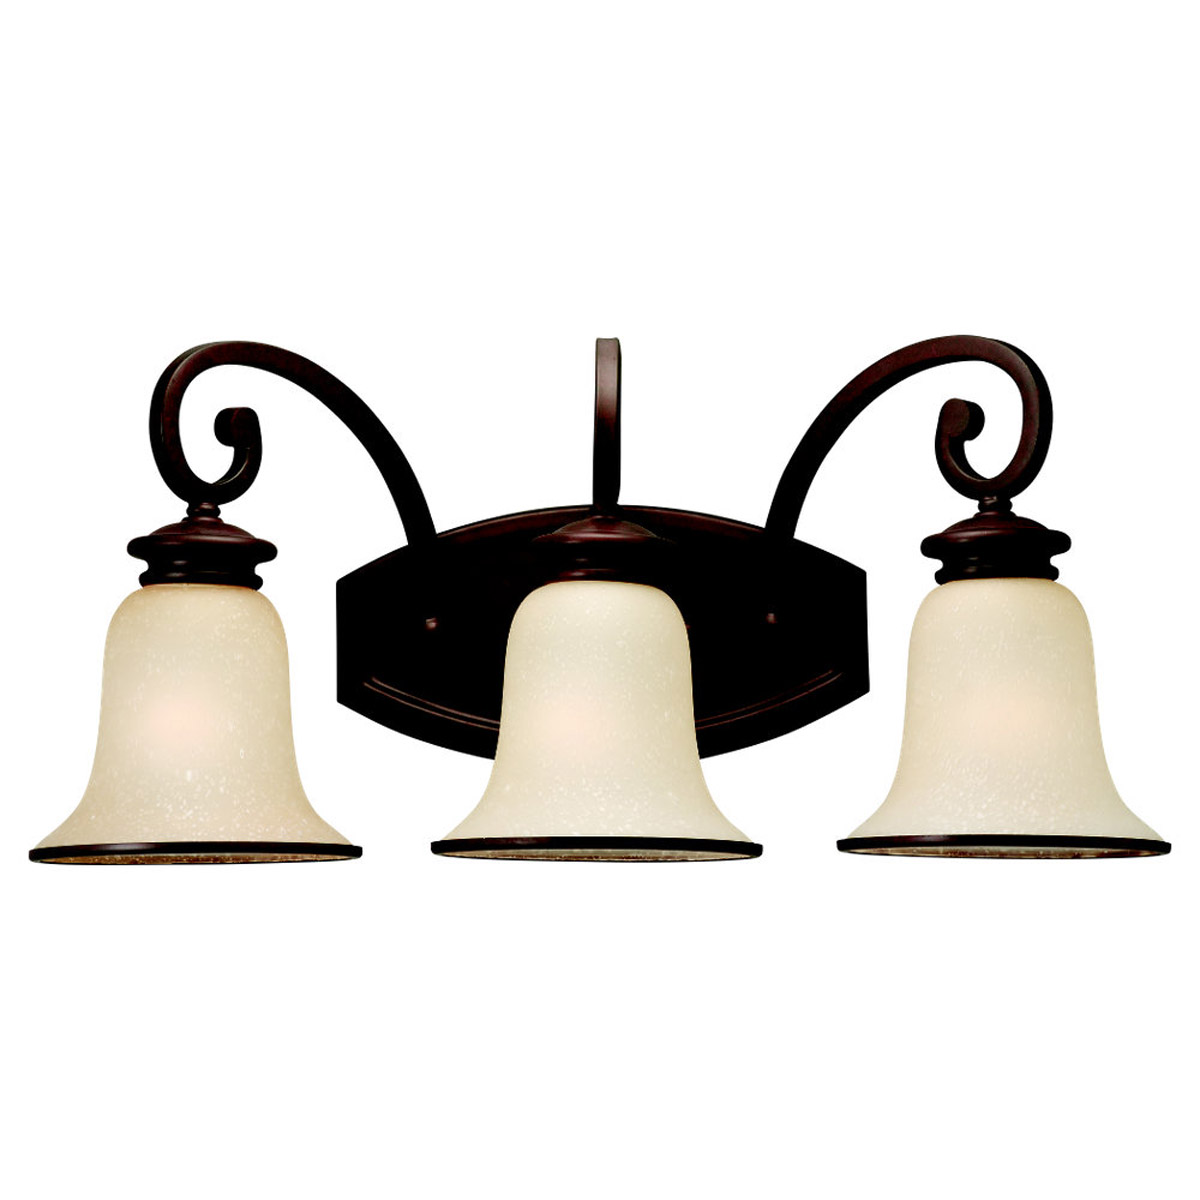 Sea Gull Lighting Acadia 3 Light Bath Vanity in Misted Bronze 44146-814 photo